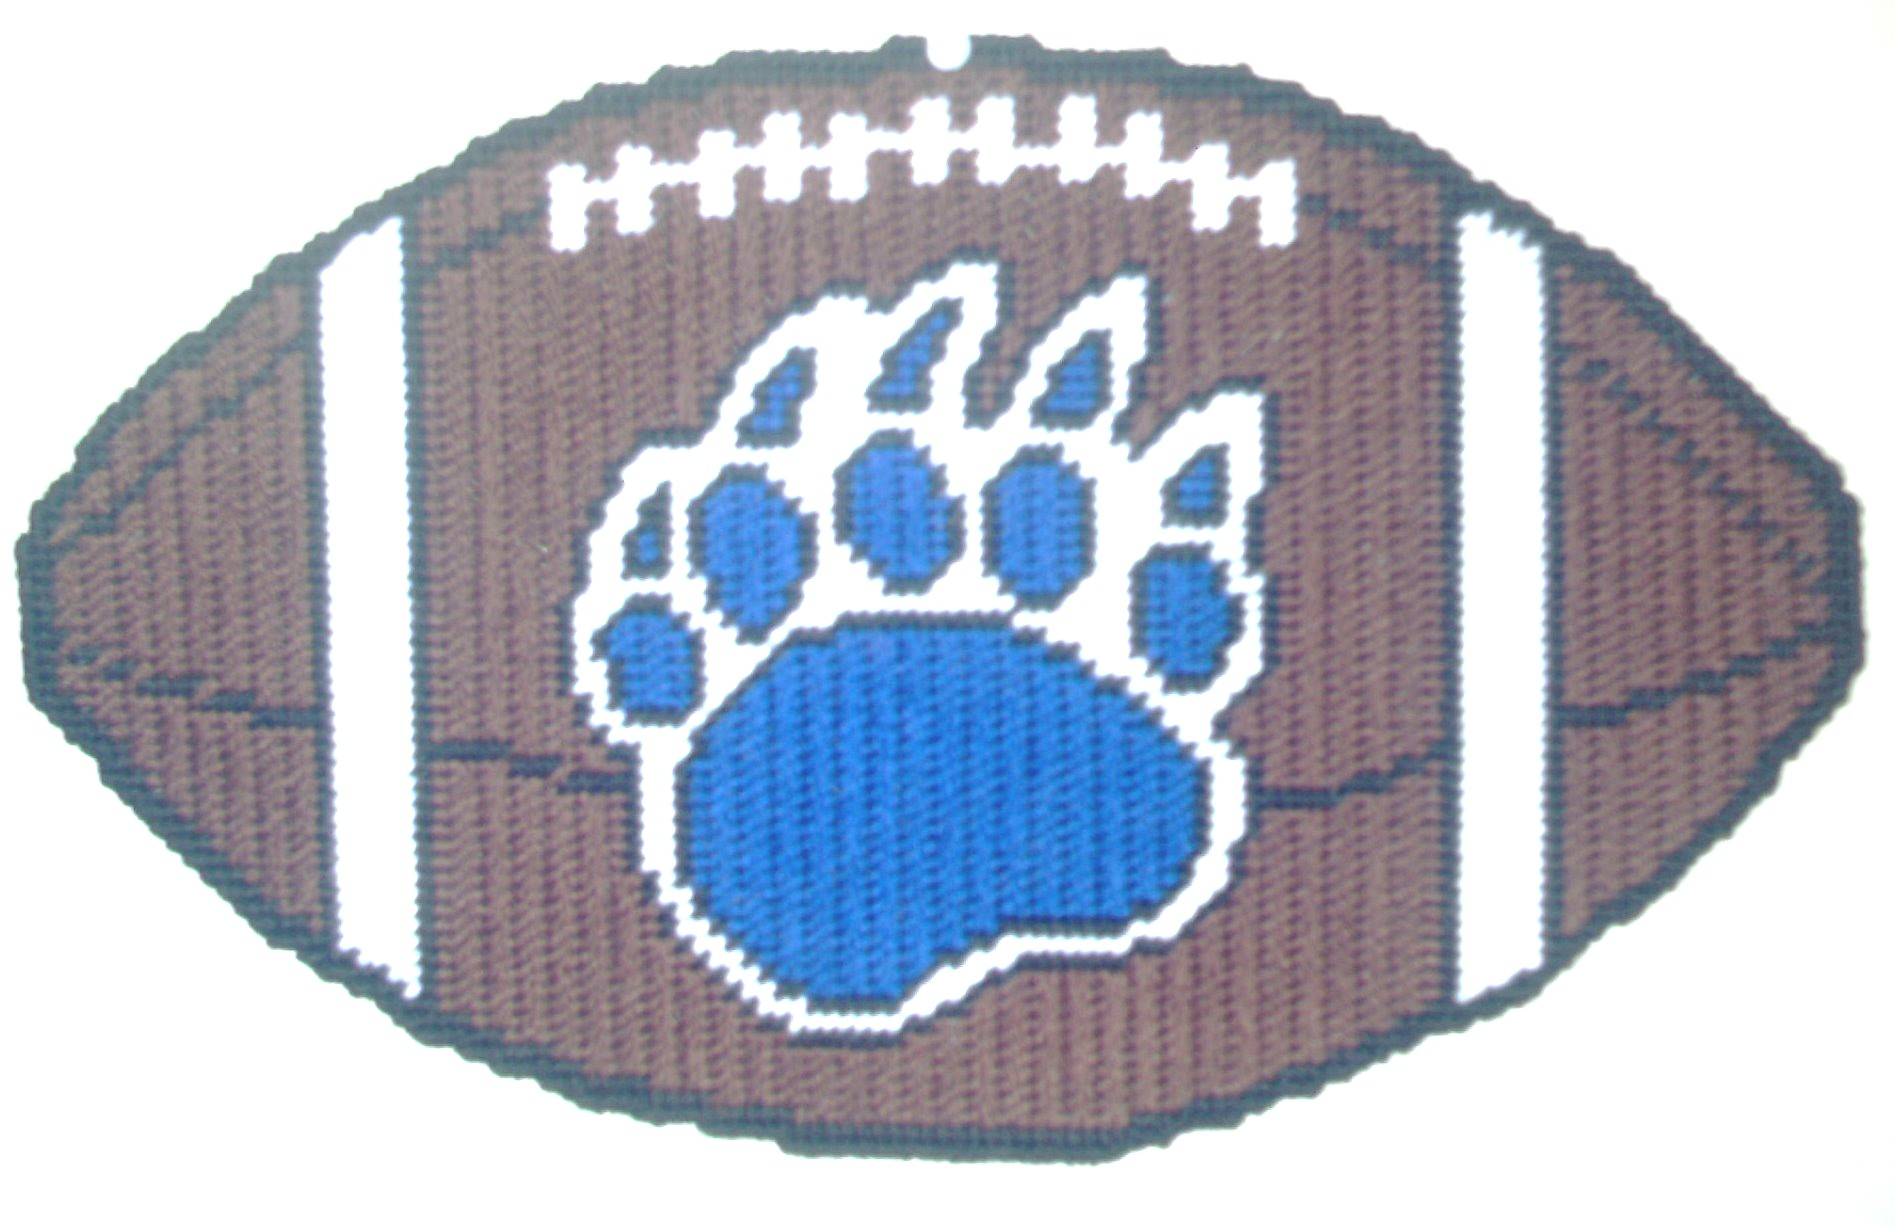 bearpawfootball17x10.jpg